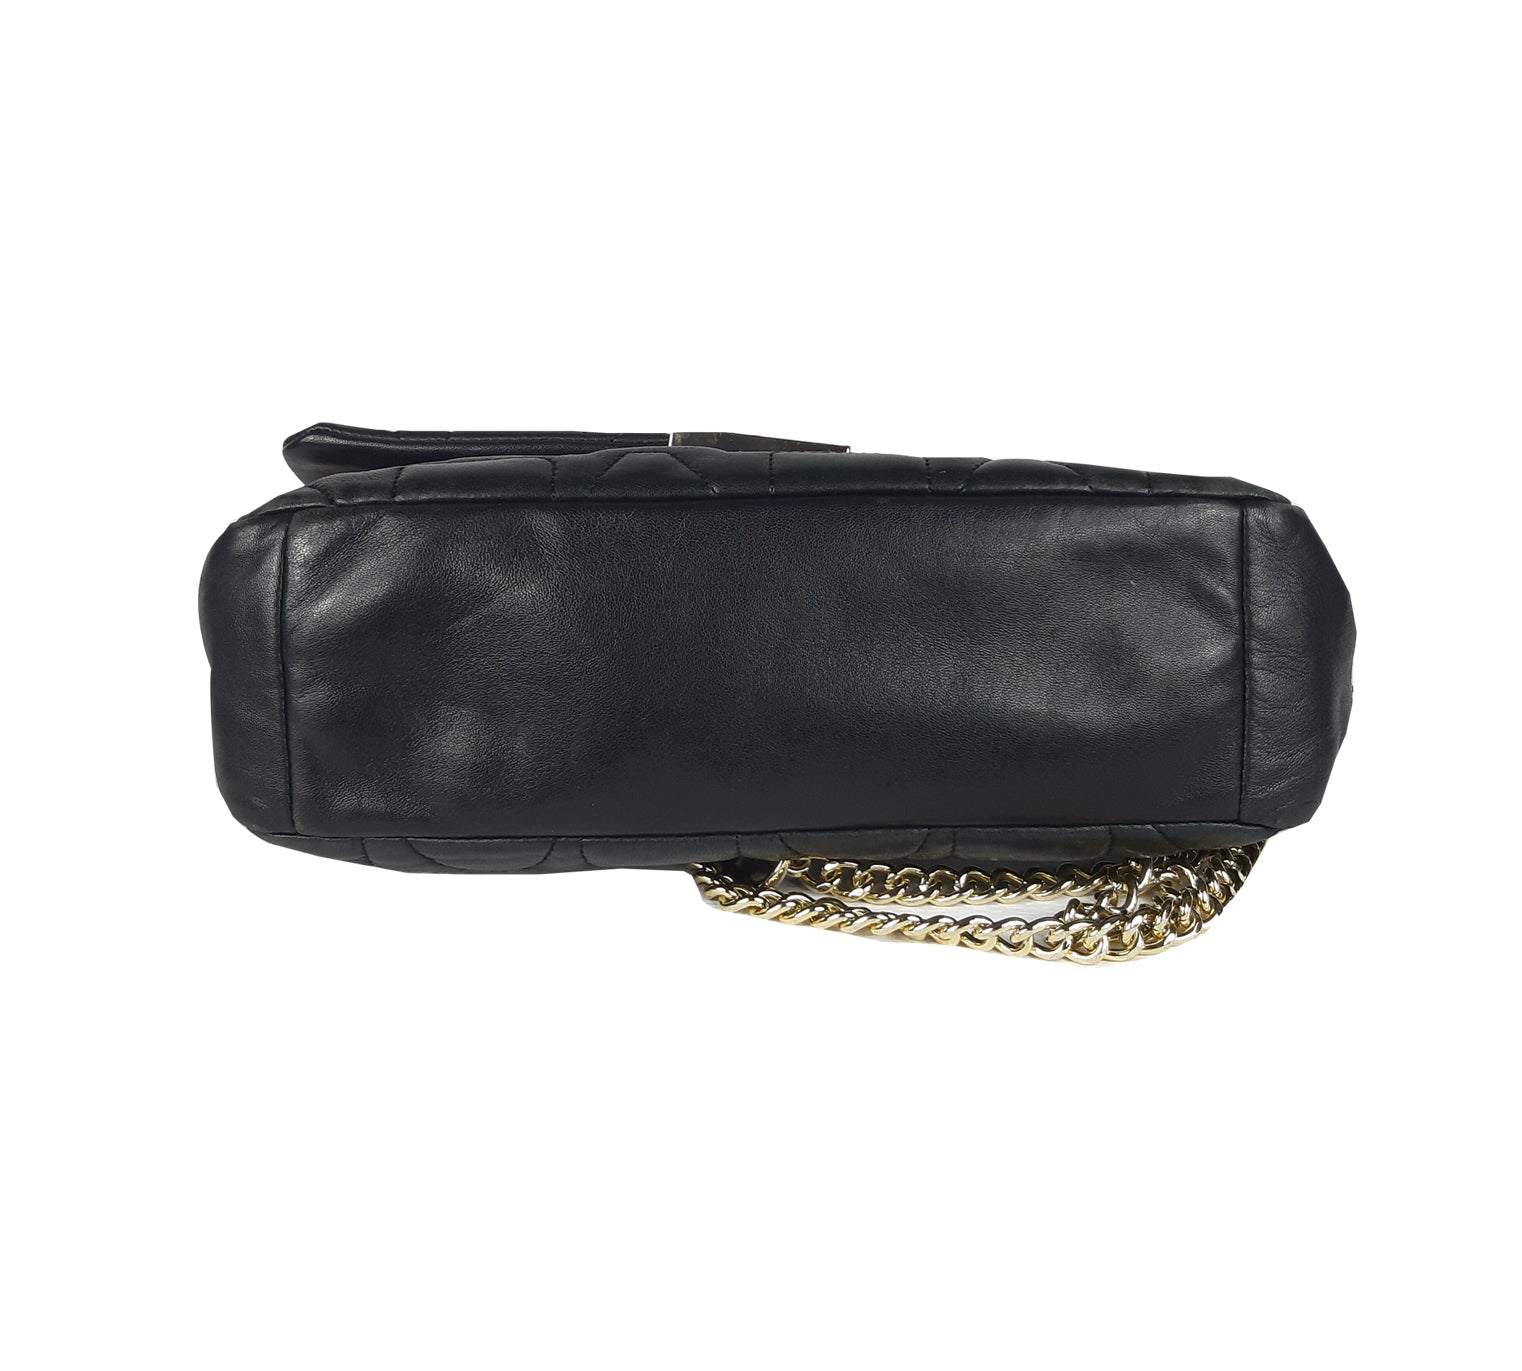 Adolfo Dominguez Crossbody Bag with Gold Hardware